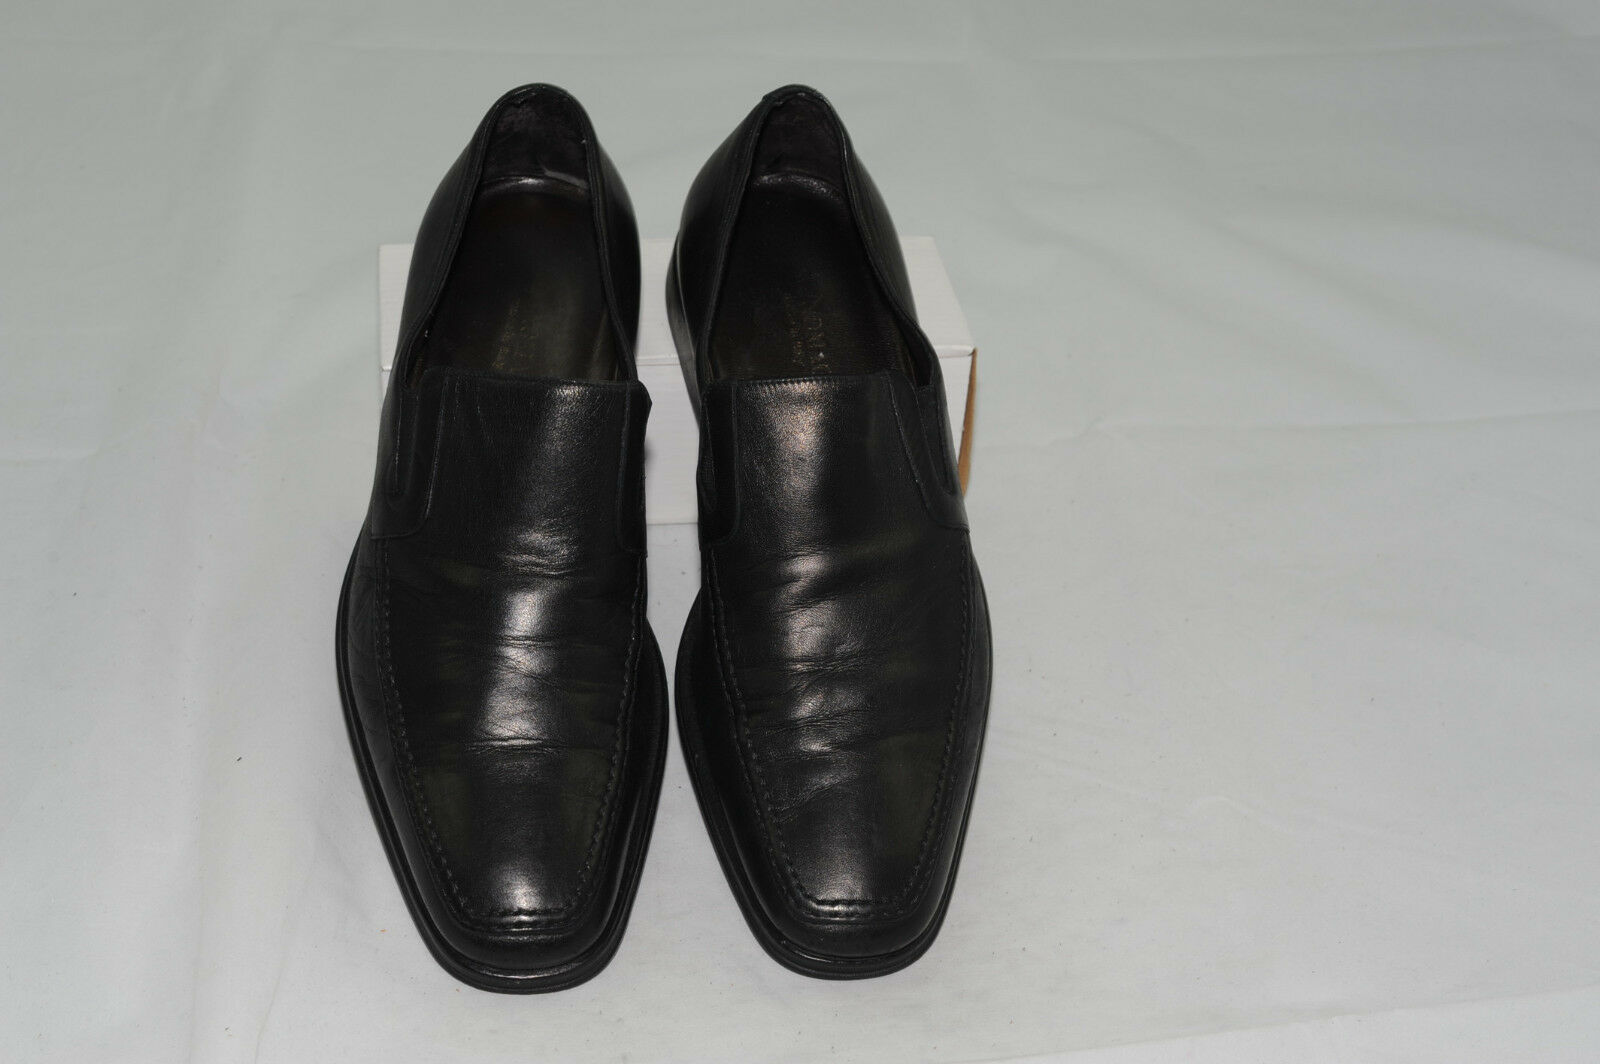 Bruno Magli Leather Slip-Ons Loafer Dress shoes 8 M Made in